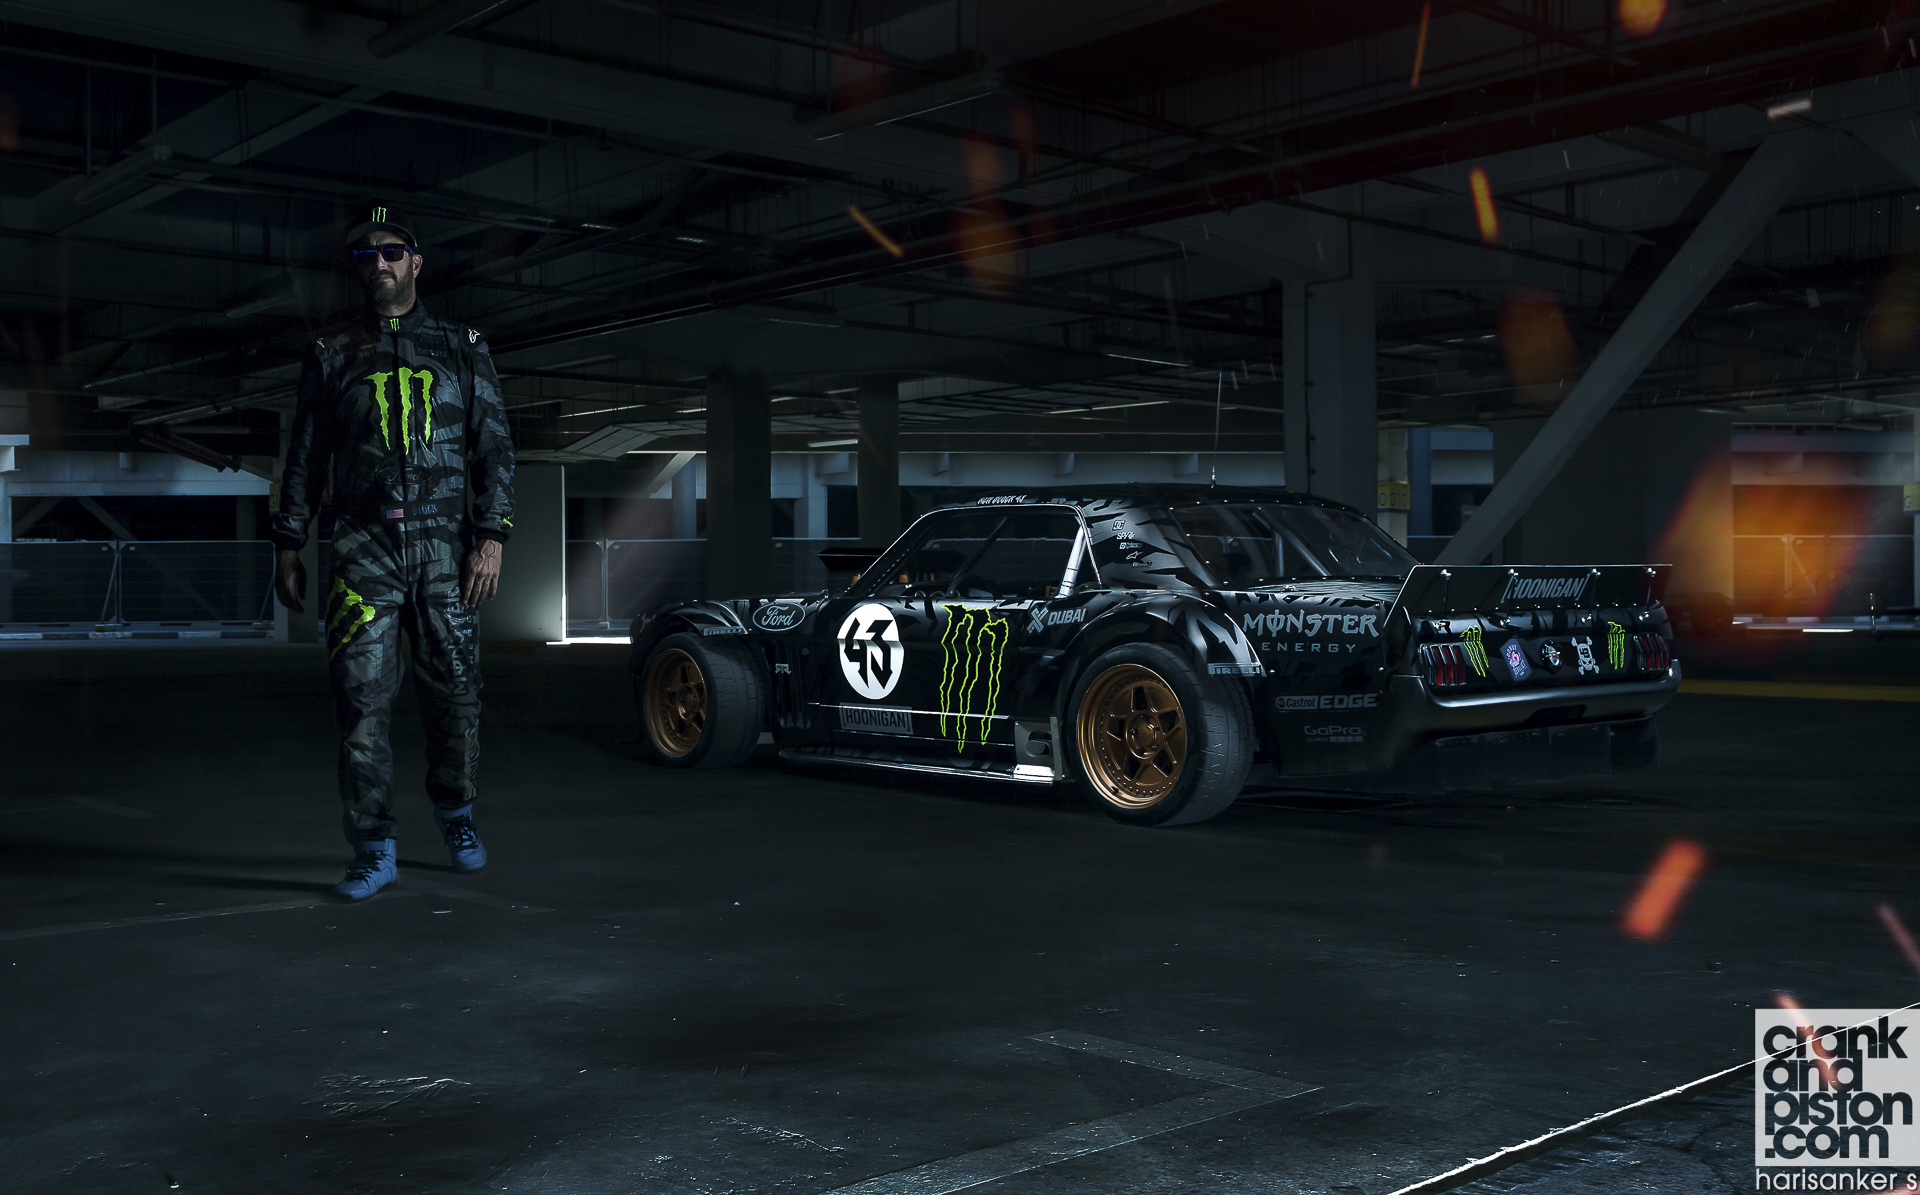 Fast And Furious 8 Cars Wallpaper Hd Poster Heroes No 2 Ken Block S Hoonicorn